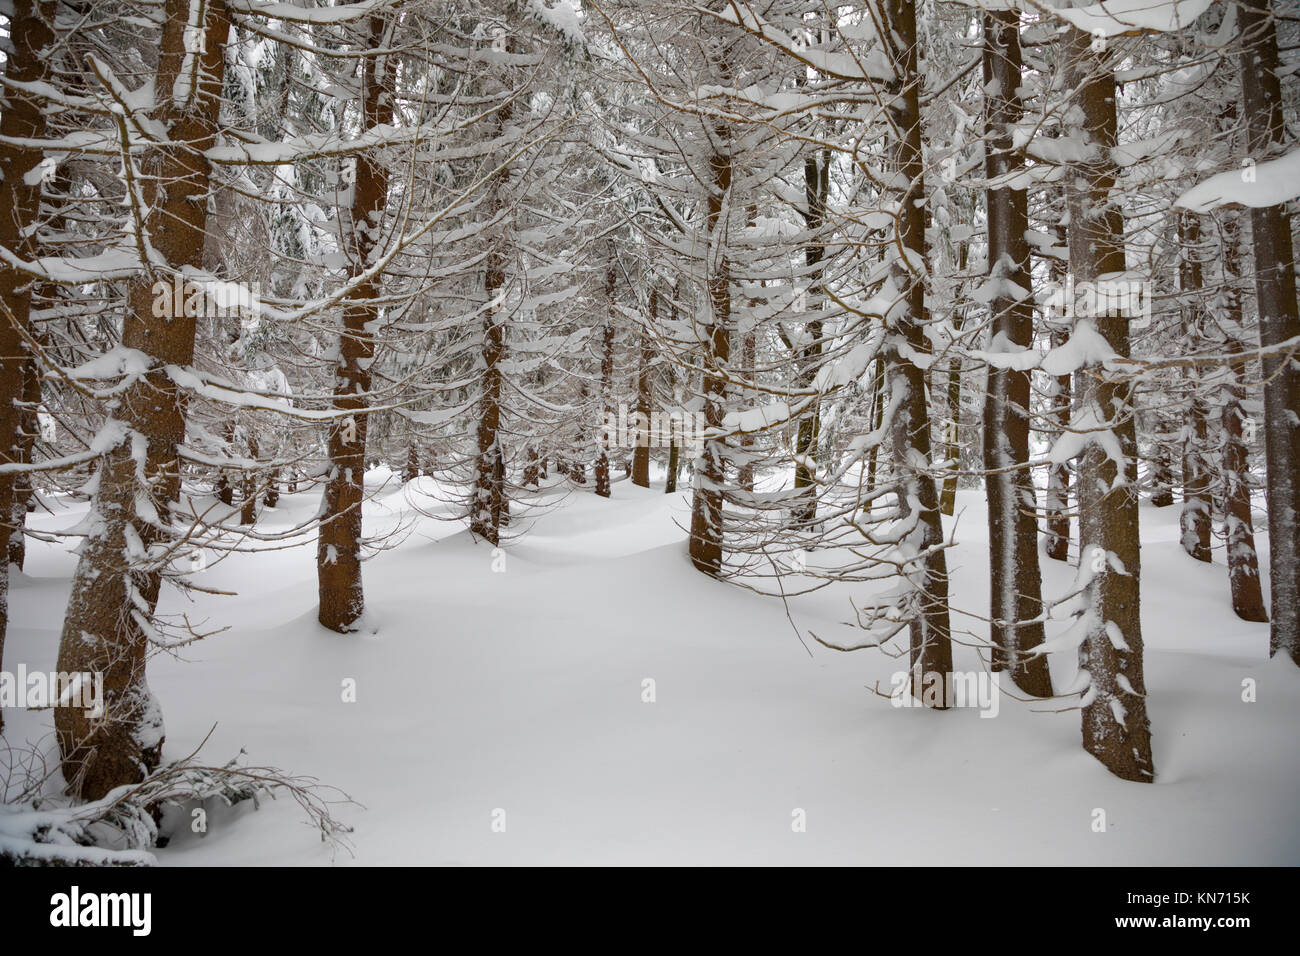 Winter landscape with spruces and snow in mountains - Stock Image